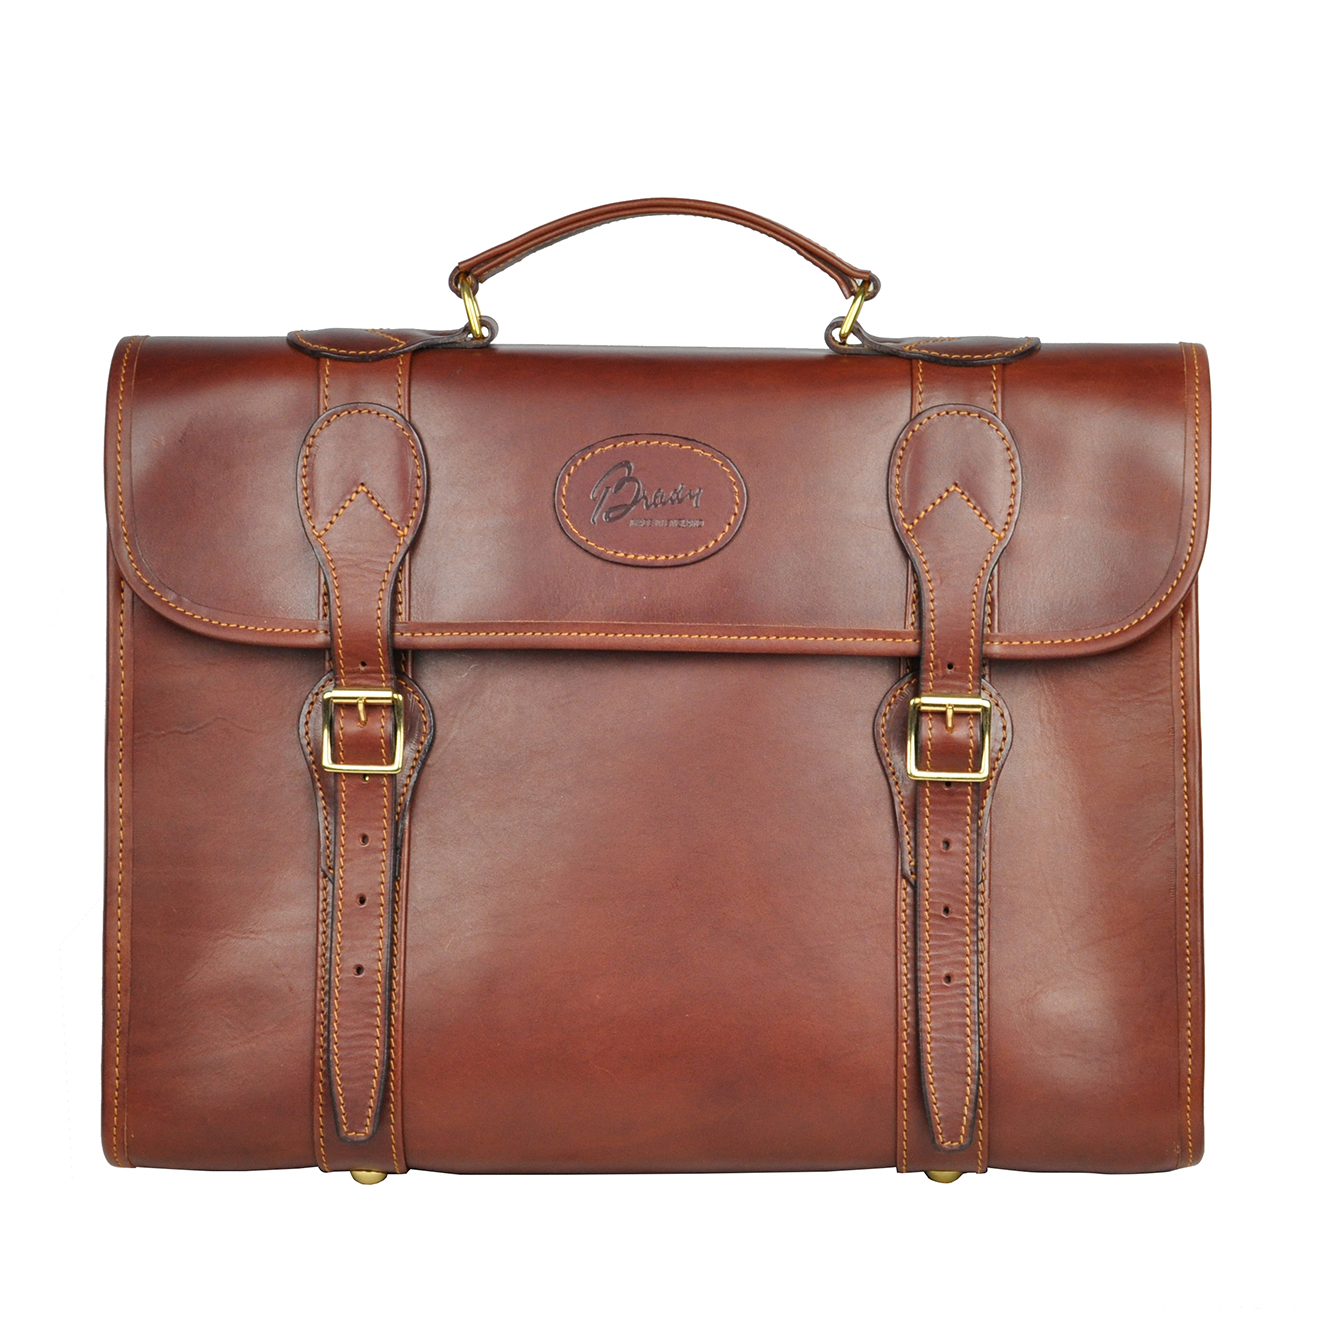 finest leather briefcase photo - 1